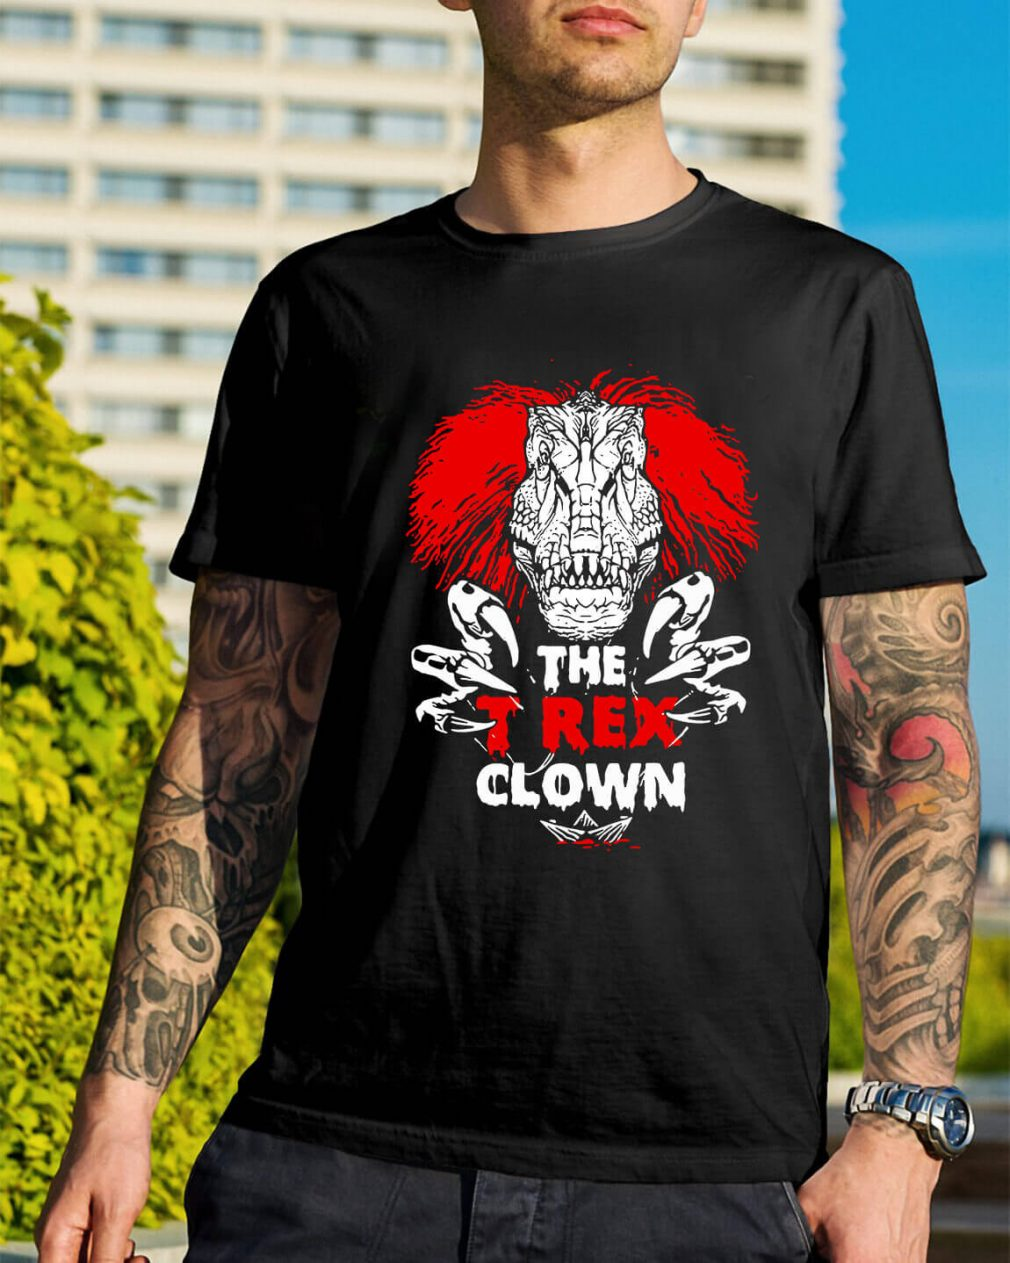 Pennywise the T-rex clown shirt